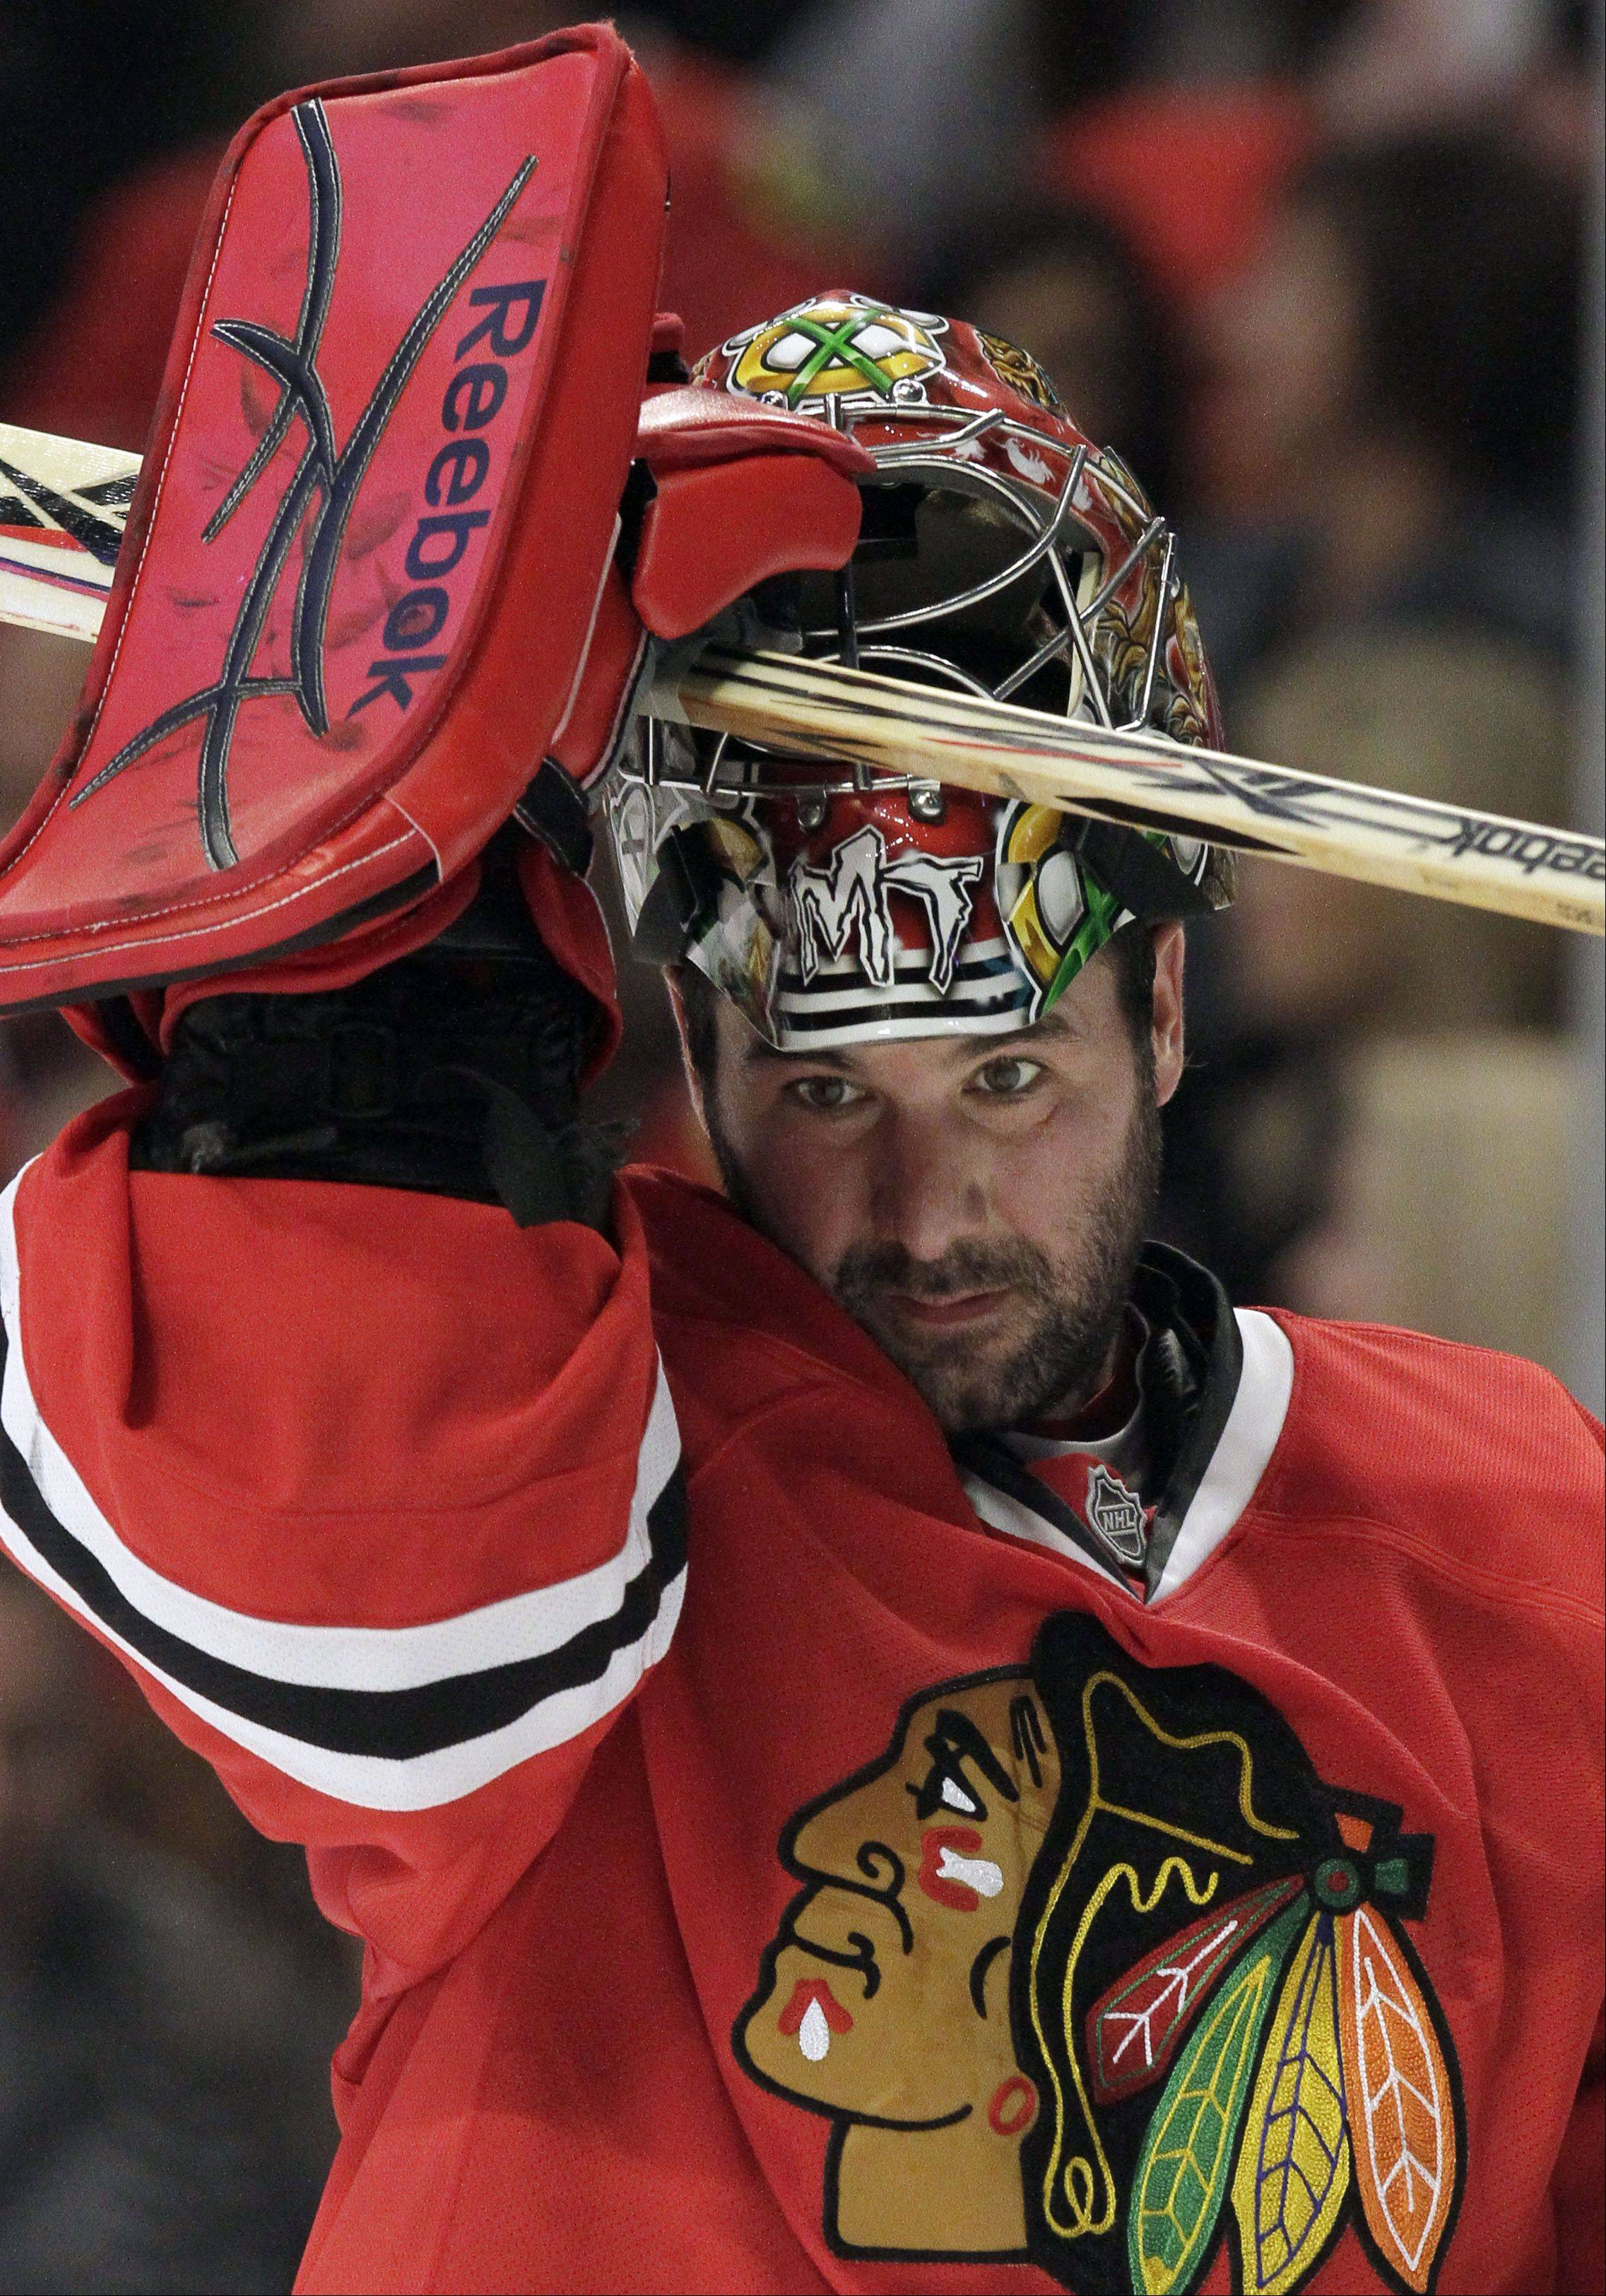 Don't expect Hawks to bring back Turco